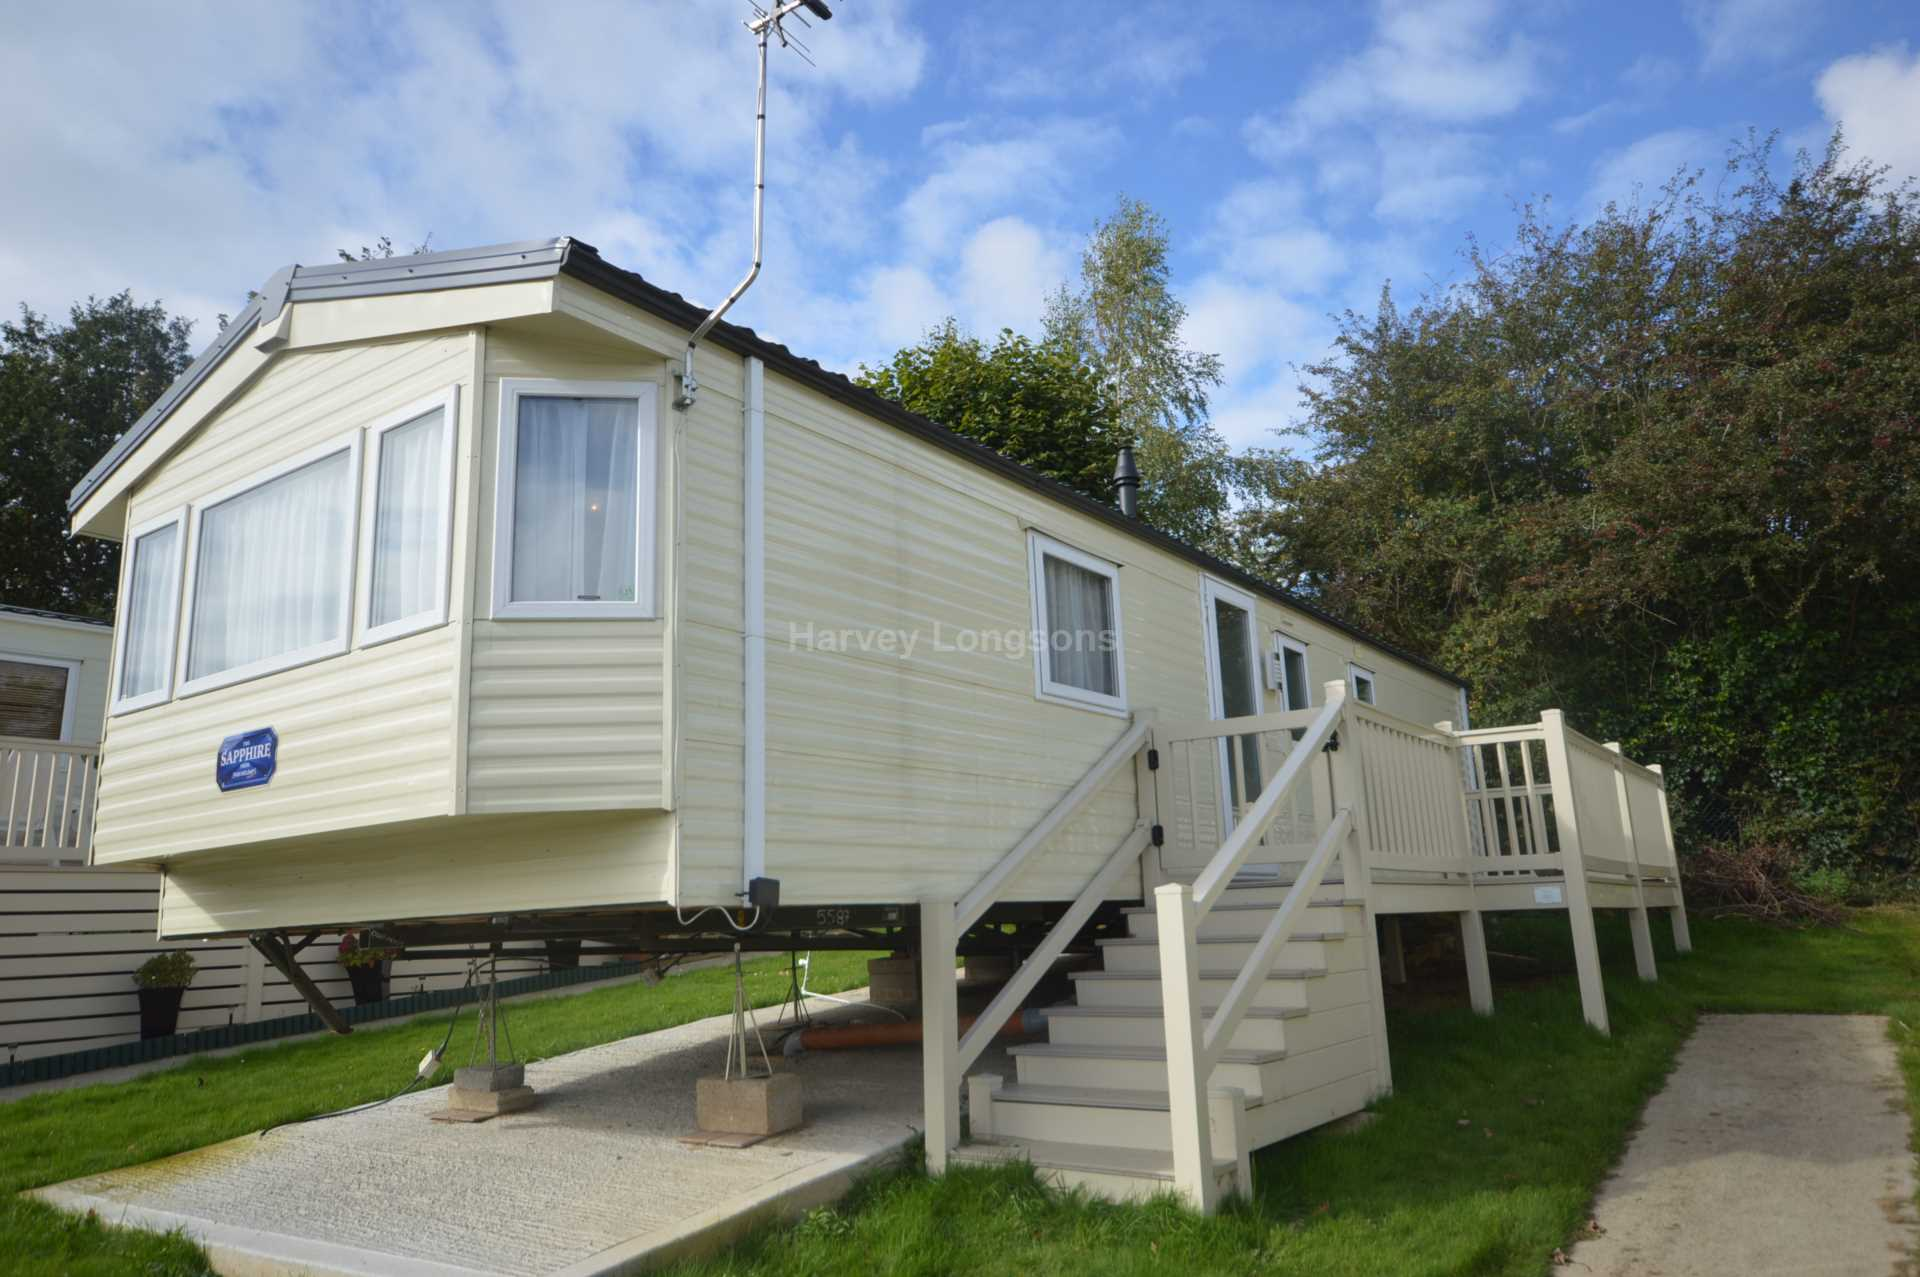 used mobile homes - Static Caravans, For Sale in Cambridgeshire